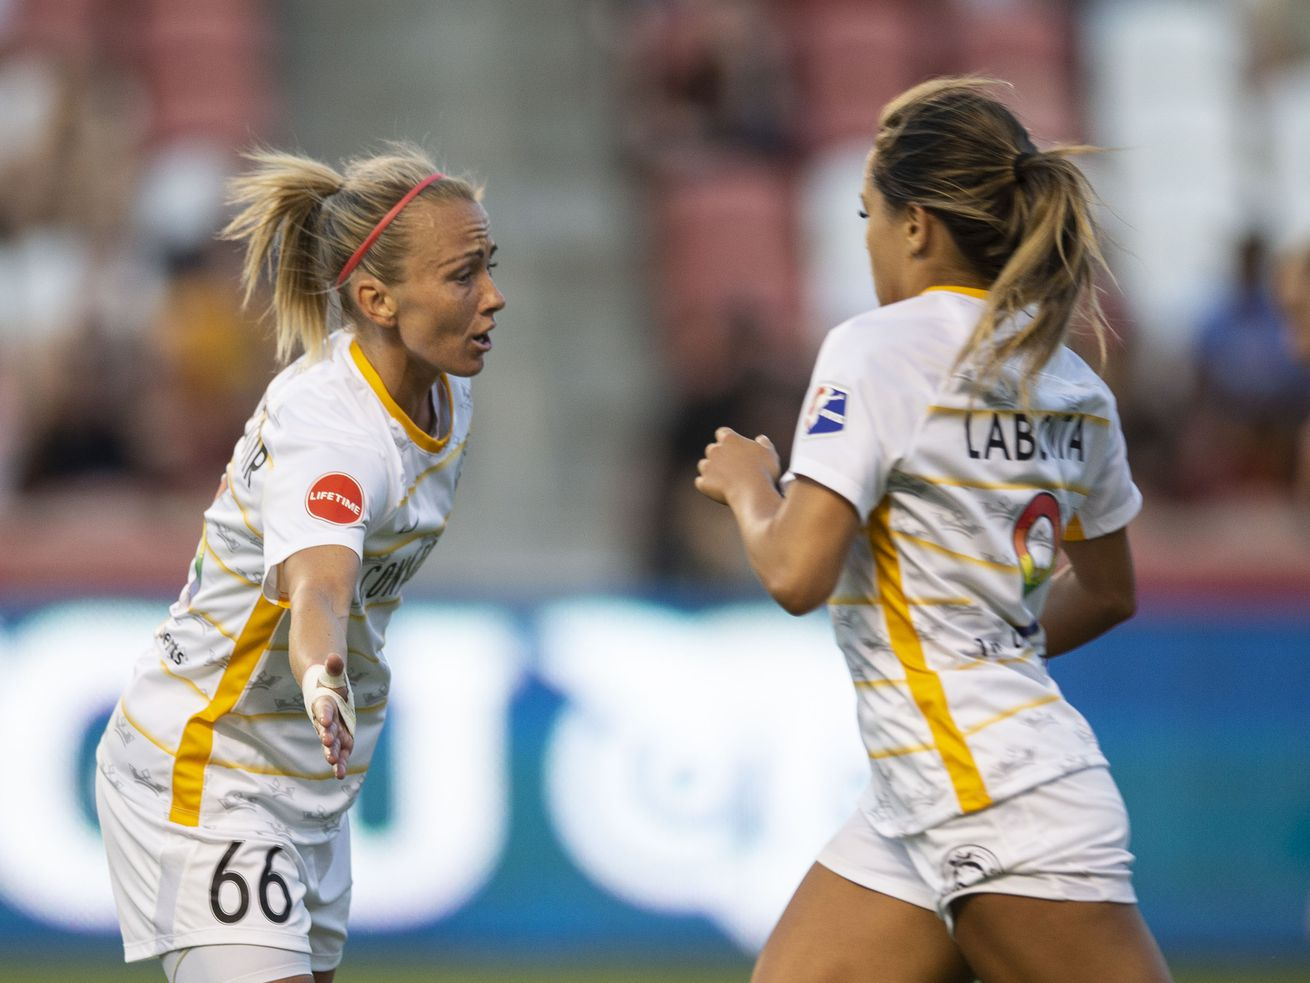 Utah Royals FC midfielder Gunnhildur Jónsdóttir (66) high-fives Utah Royals FC midfielder Lo'eau LaBonta (9) during their match against the Seattle Reign FC at Rio Tinto Stadium in Sandy on Friday, June 28, 2019.